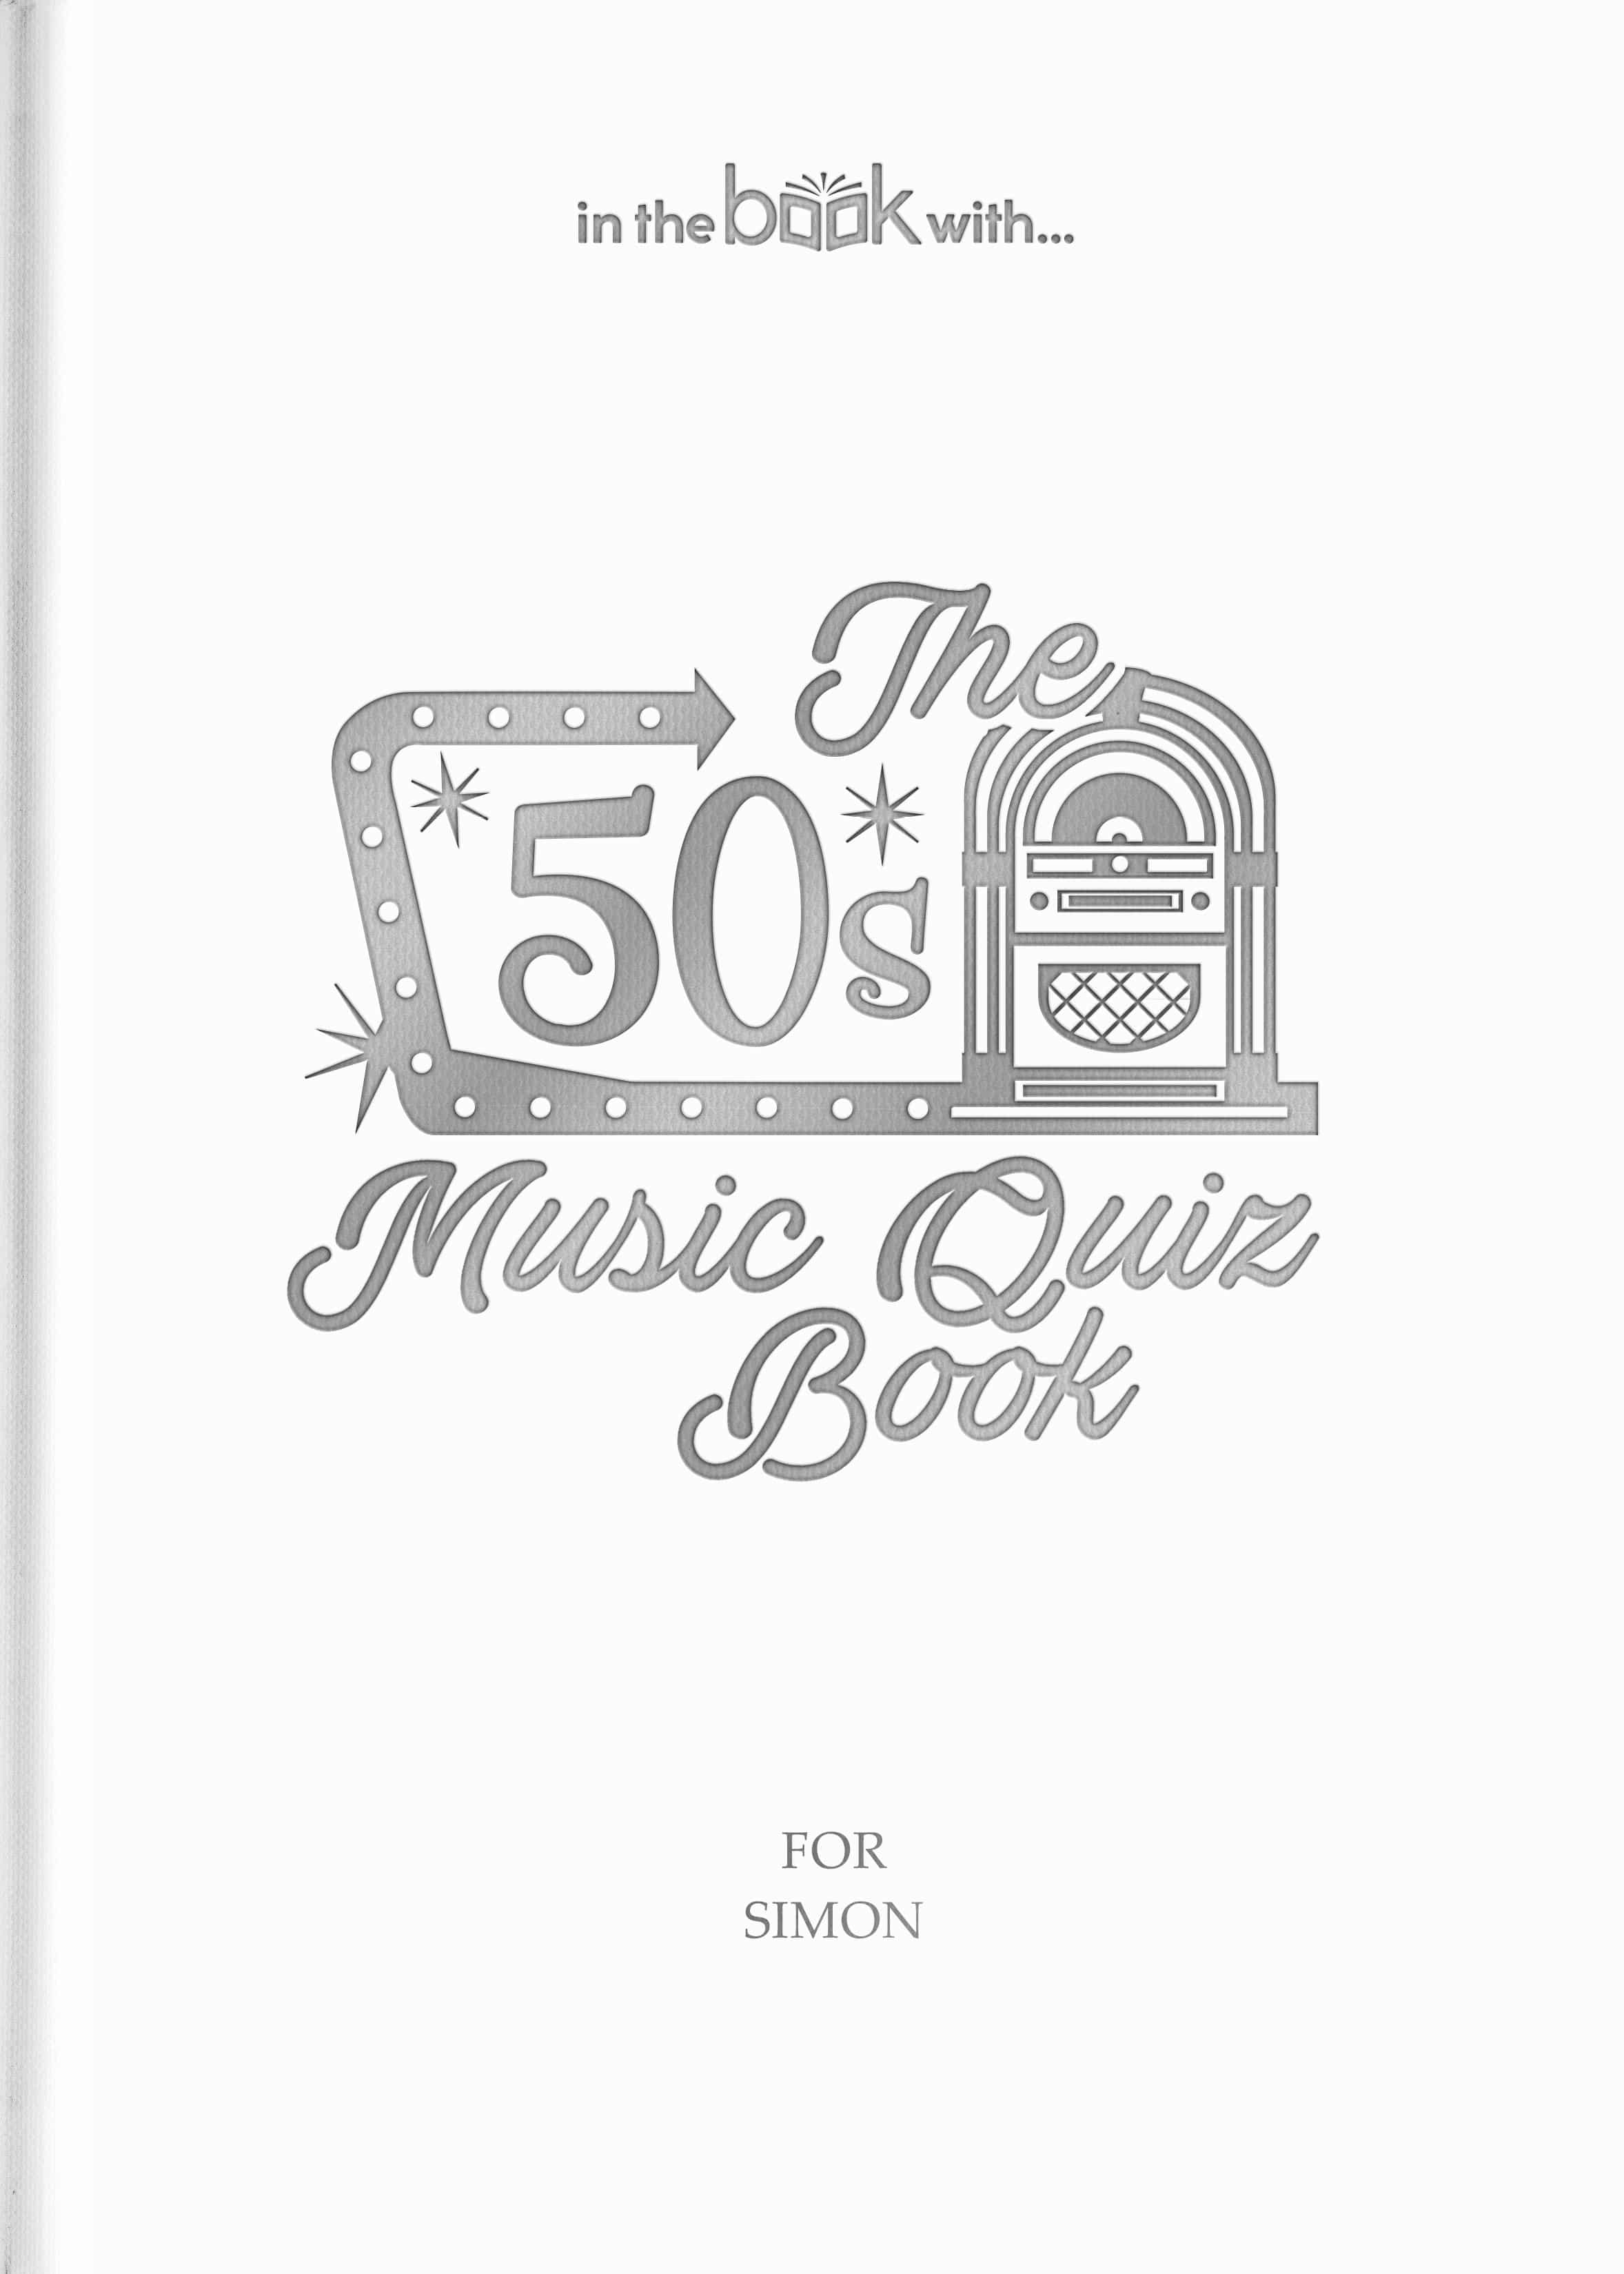 50s Music Quiz book